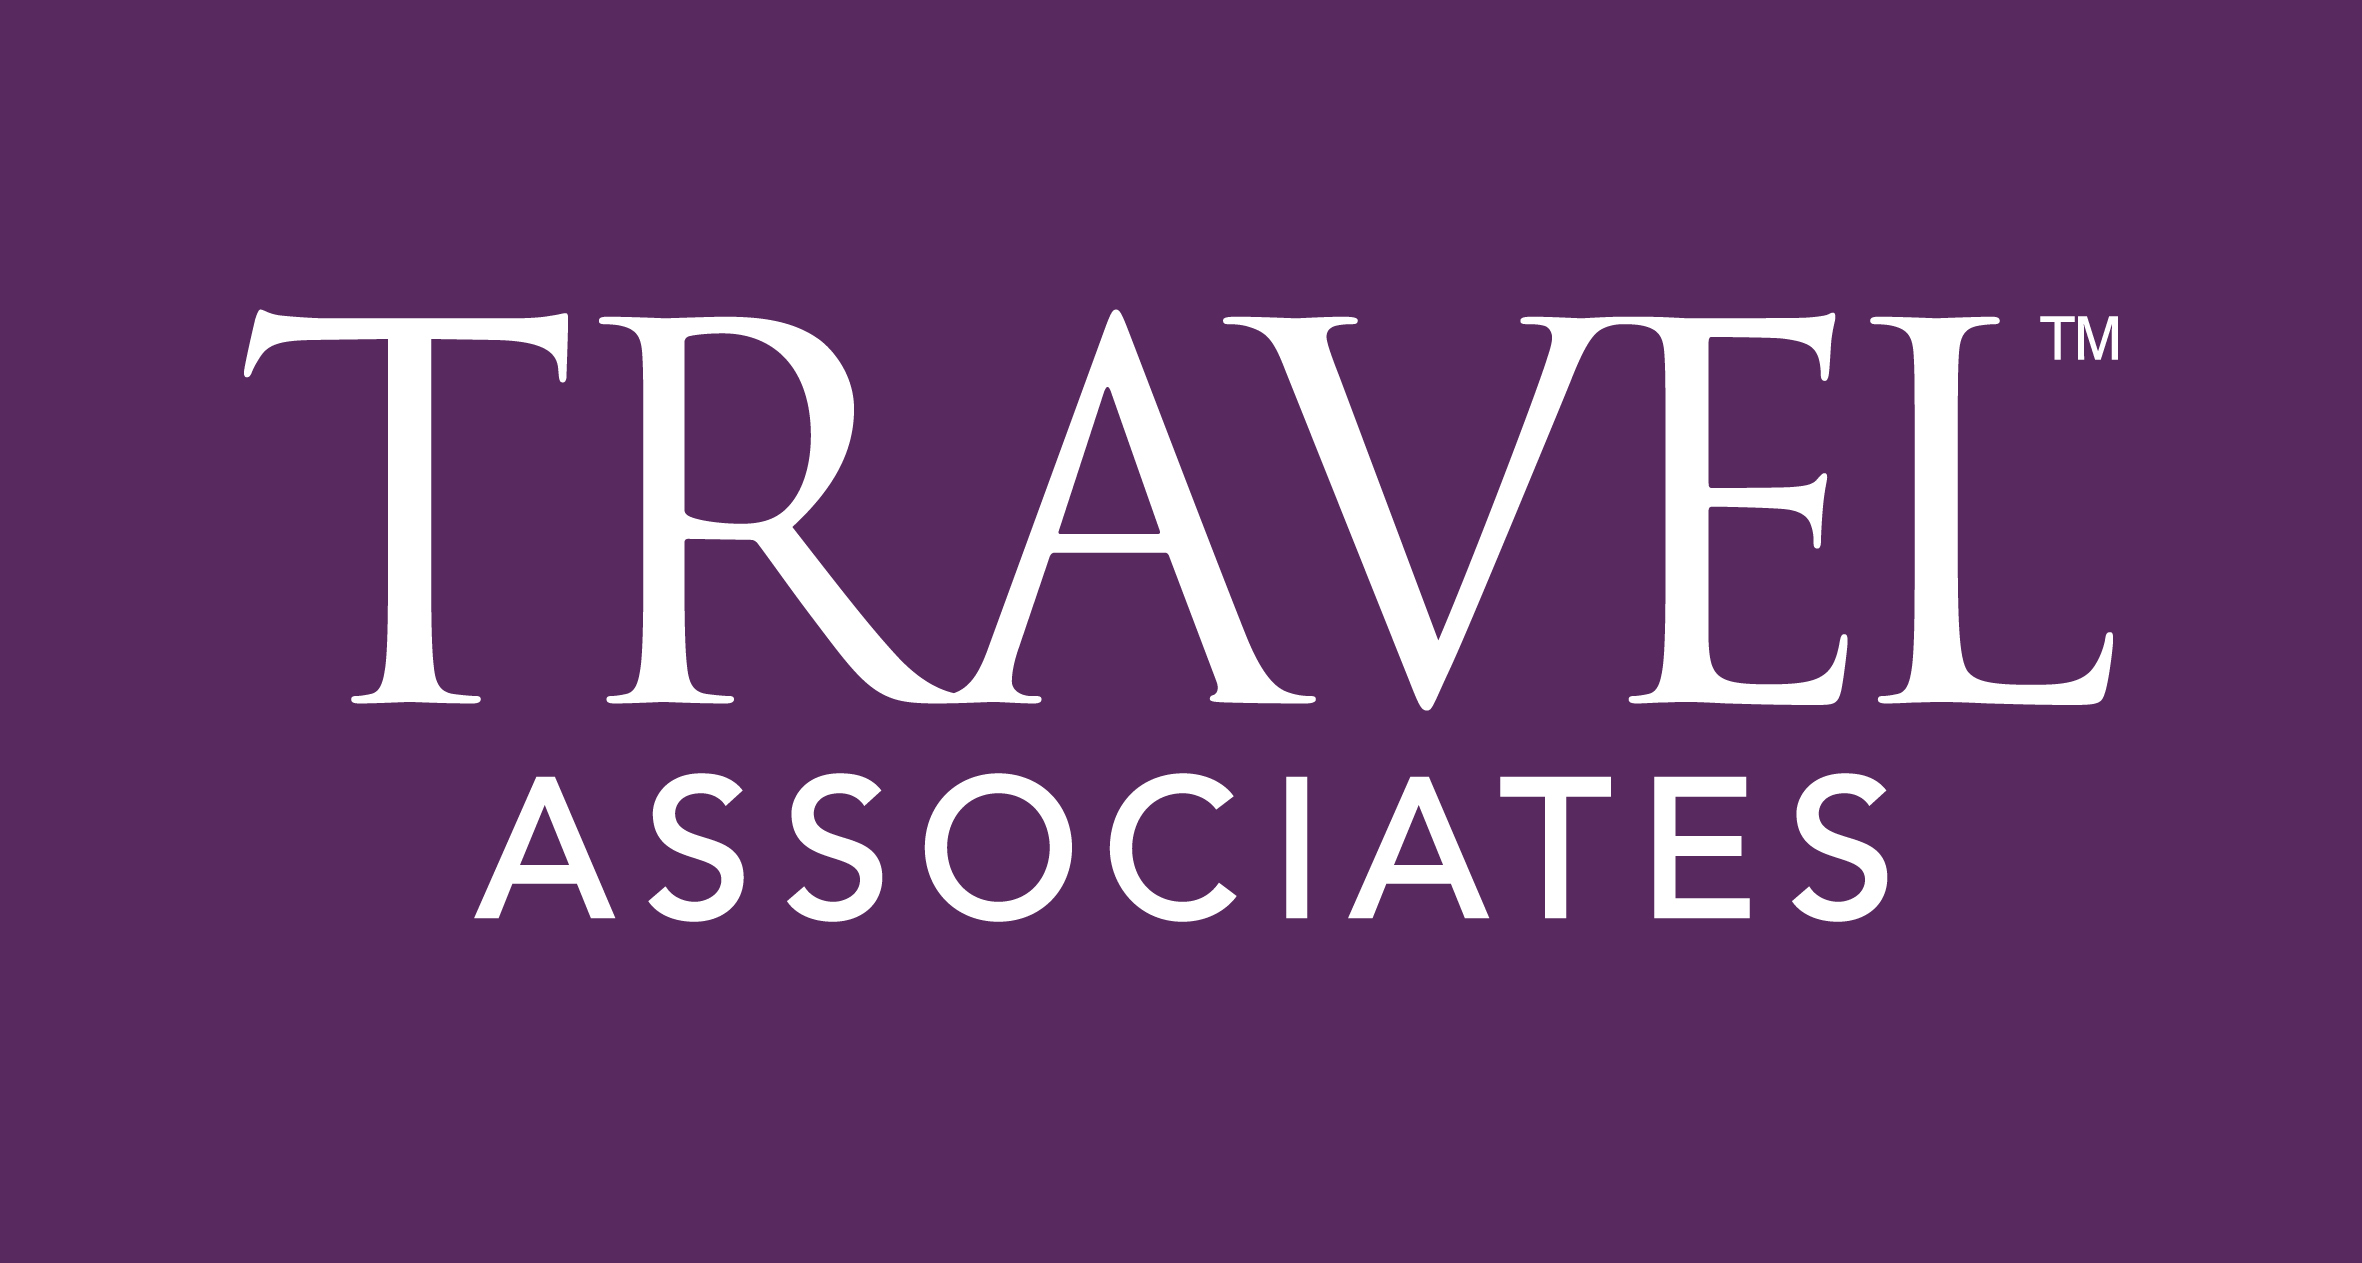 TRAVEL ASSOCIATES TOORAK Logo